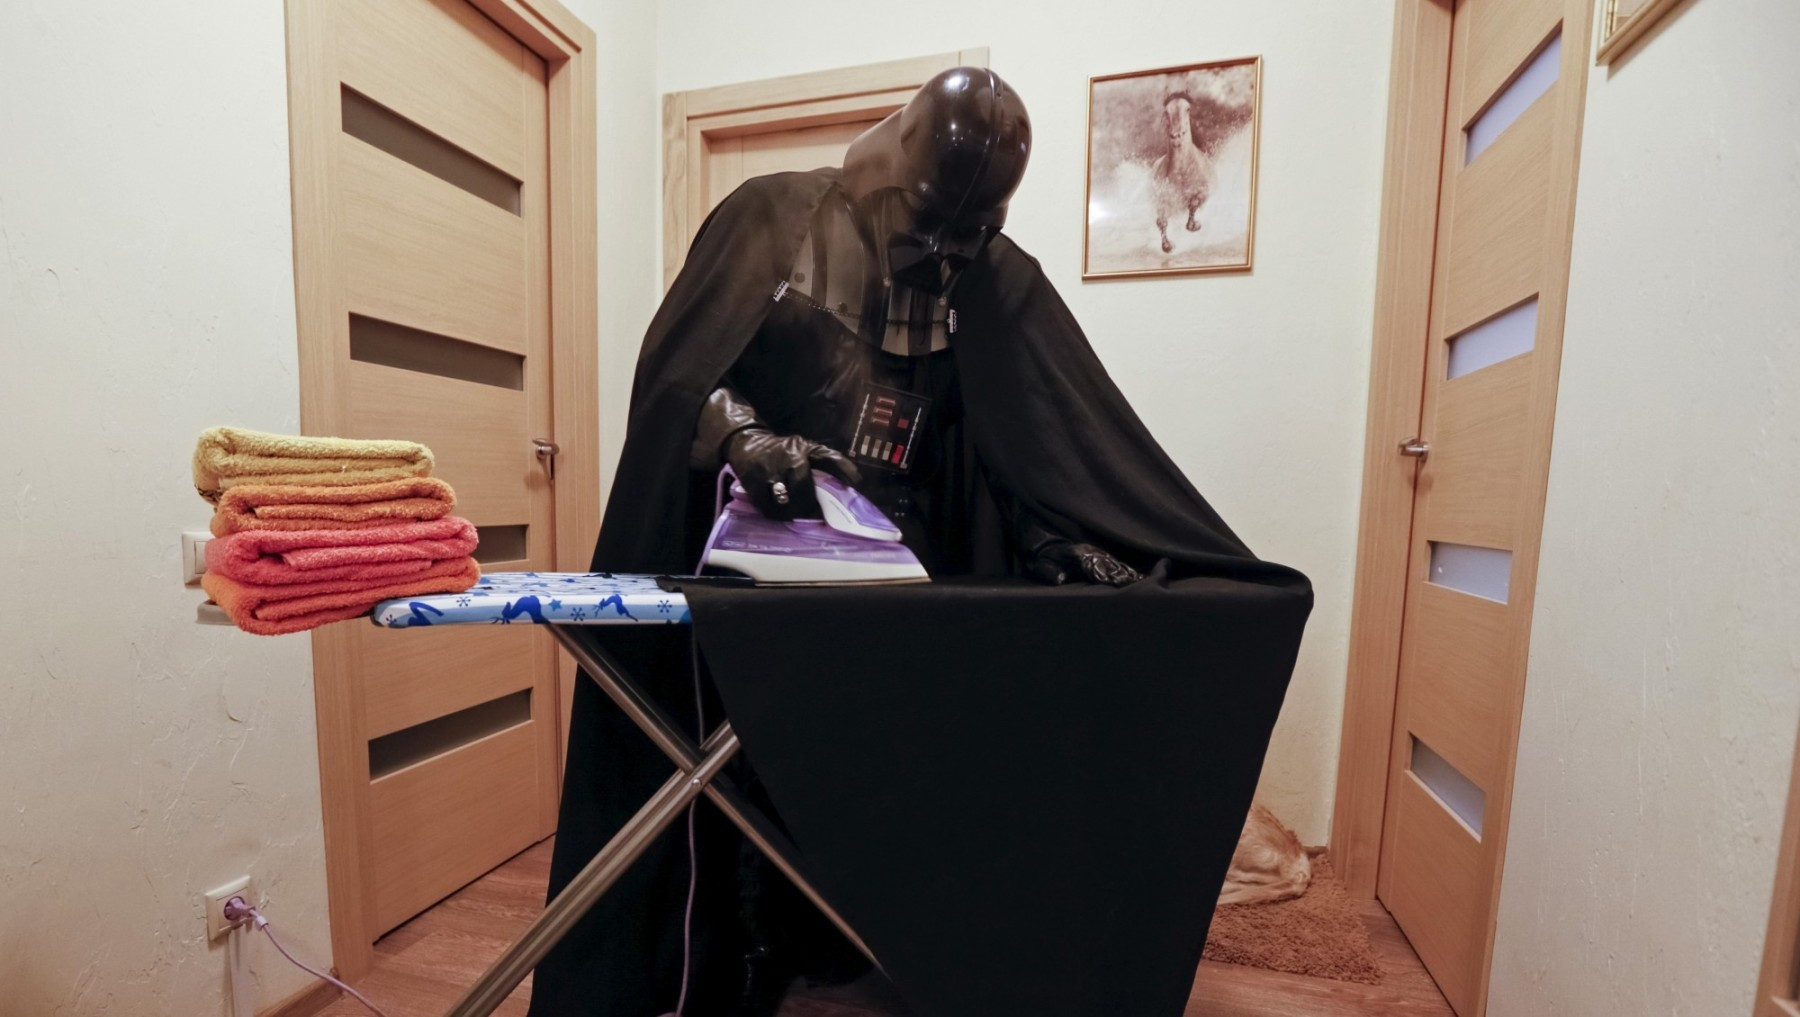 "Darth Mykolaiovych Vader, who is dressed as the 'Star Wars' character Darth Vader, poses for a picture as he irons his cloak at his apartments in Odessa, Ukraine, December 2, 2015. Darth Vader was bent on galactic domination, but his Ukrainian namesake enjoys more mundane pursuits: local politics, walking the family dog and a spot of embroidery. The Ukrainian citizen, who has changed his name to Darth Mykolaiovych Vader, ran for the post of local mayor in October, his political backers dressed as Stormtroopers. In his trademark black outfit, he is a regular sight around Odessa, a major port city on southern Ukraine's Black Sea coast. REUTERS/Valentyn Ogirenko PICTURE 13 OF 22 - SEARCH ""VALENTYN VADER"" FOR ALL IMAGES - RTX1Y83Z"